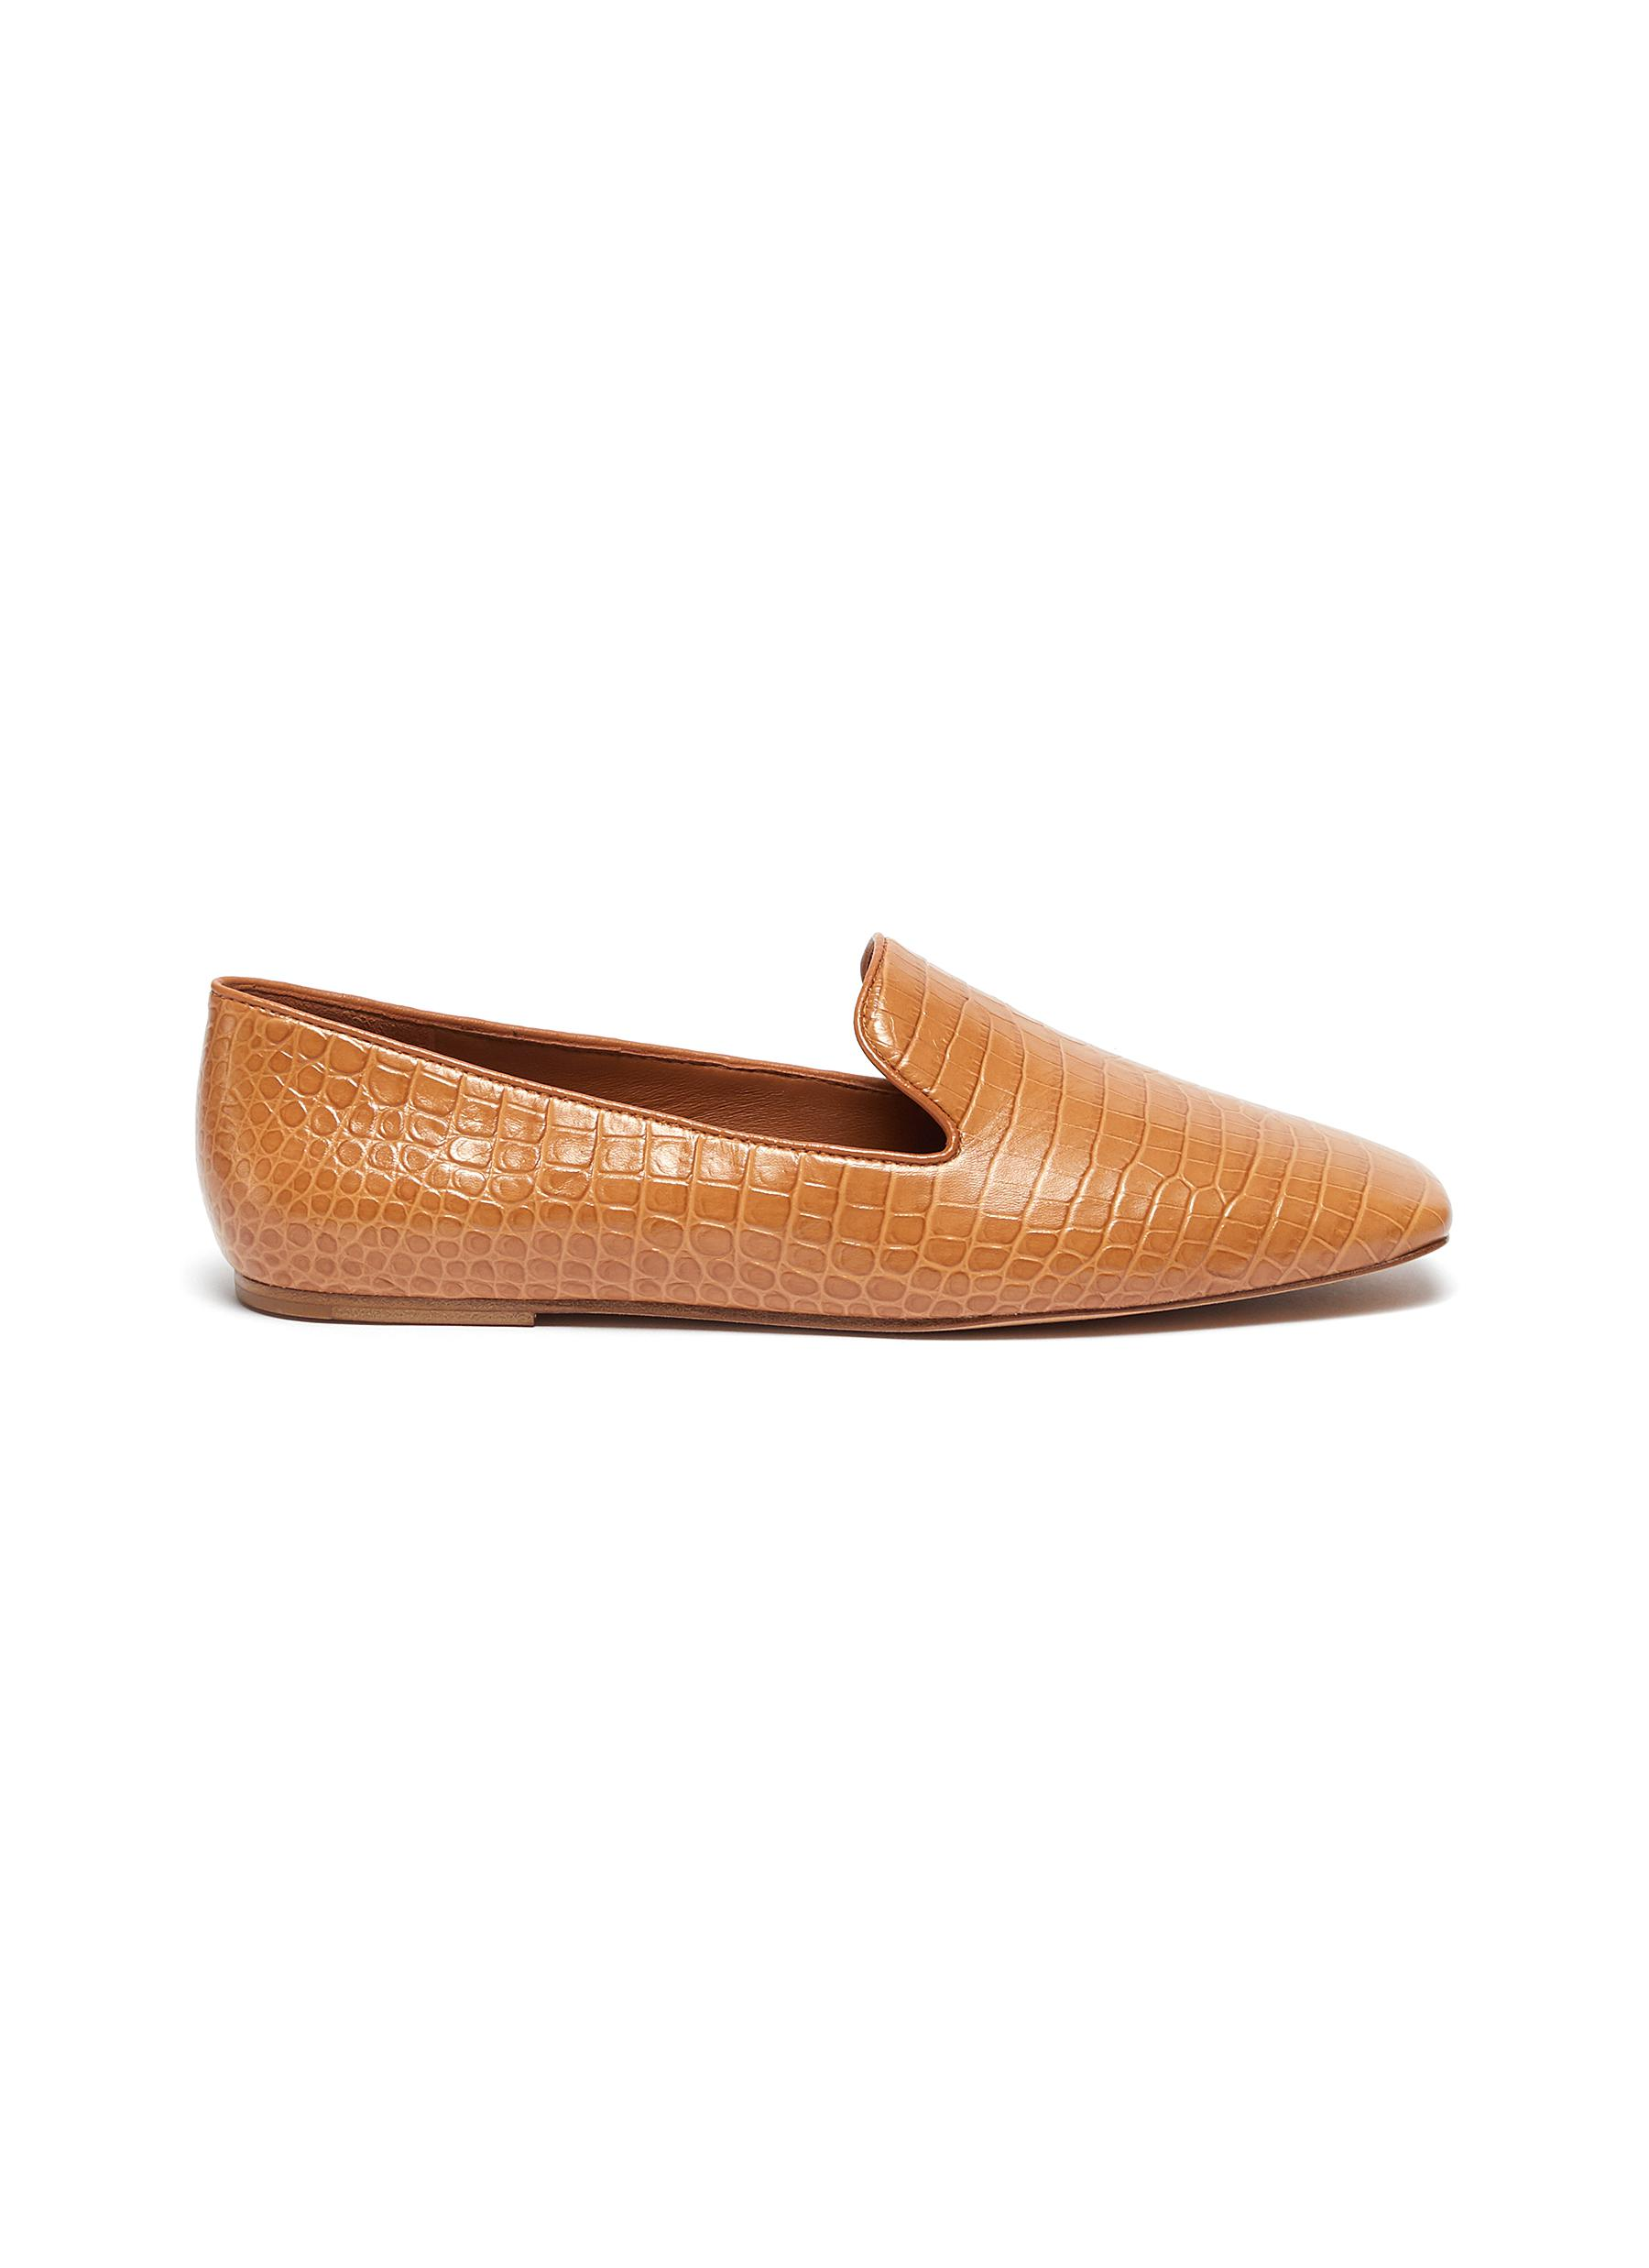 Vince CLARK' CROC EMBOSSEDLEATHER SQUARE TOE LOAFERS